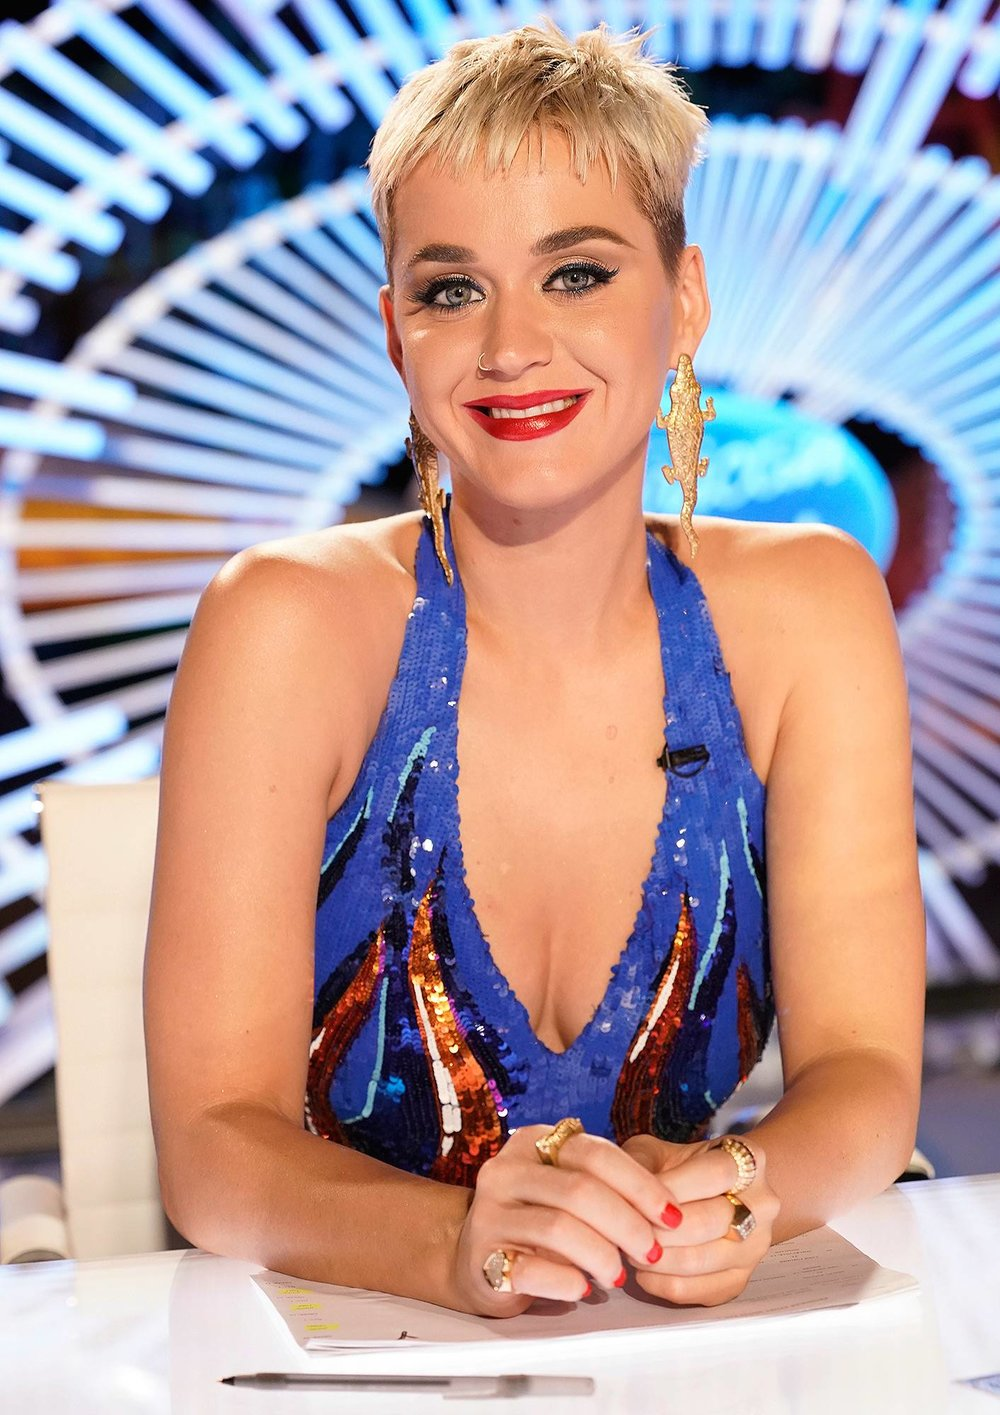 Katy Perry Photo: ABC/Alfonso Bresciani